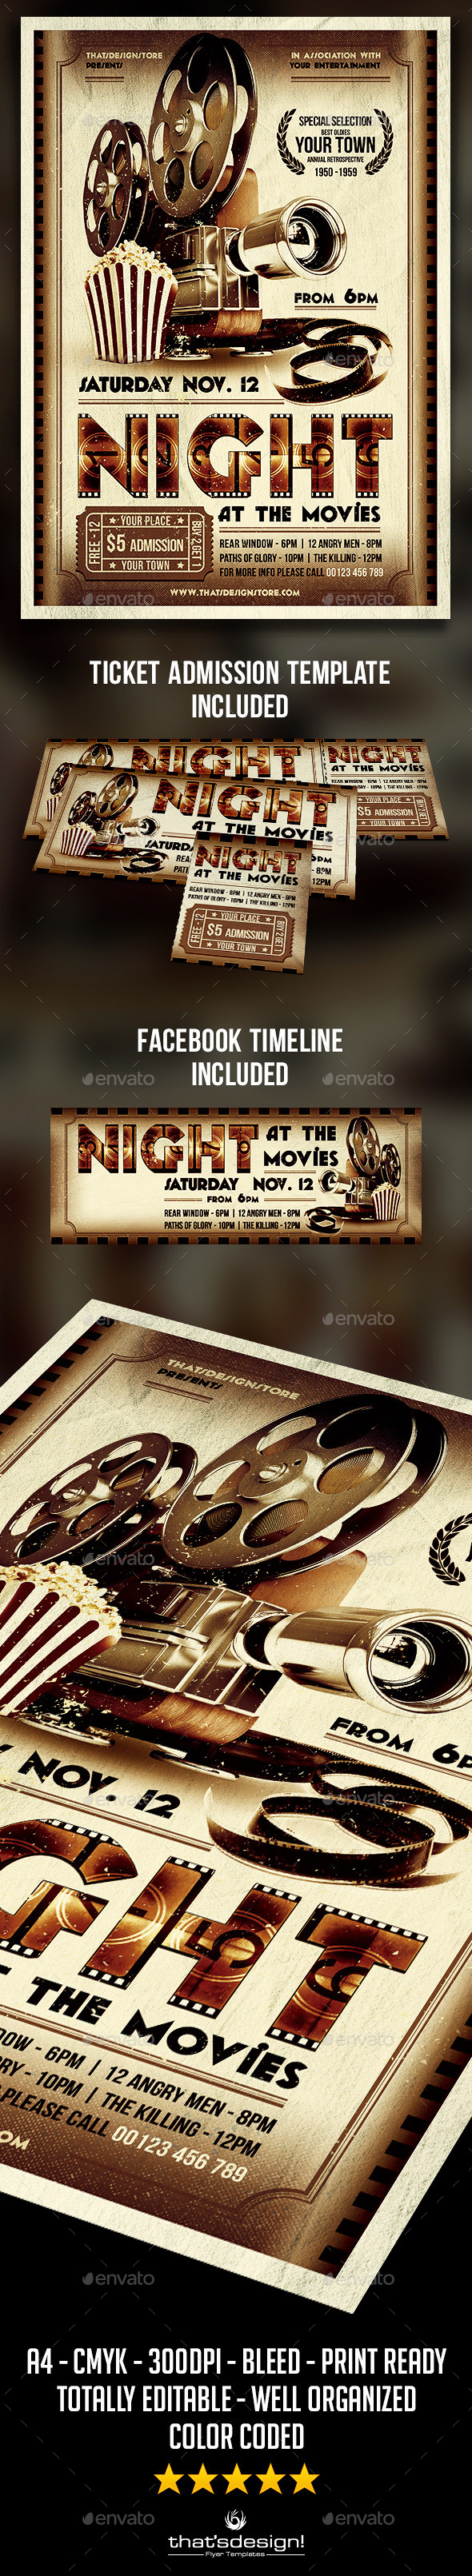 Night at the Movies Flyer Template | Flyers tickets, Flyer template ...